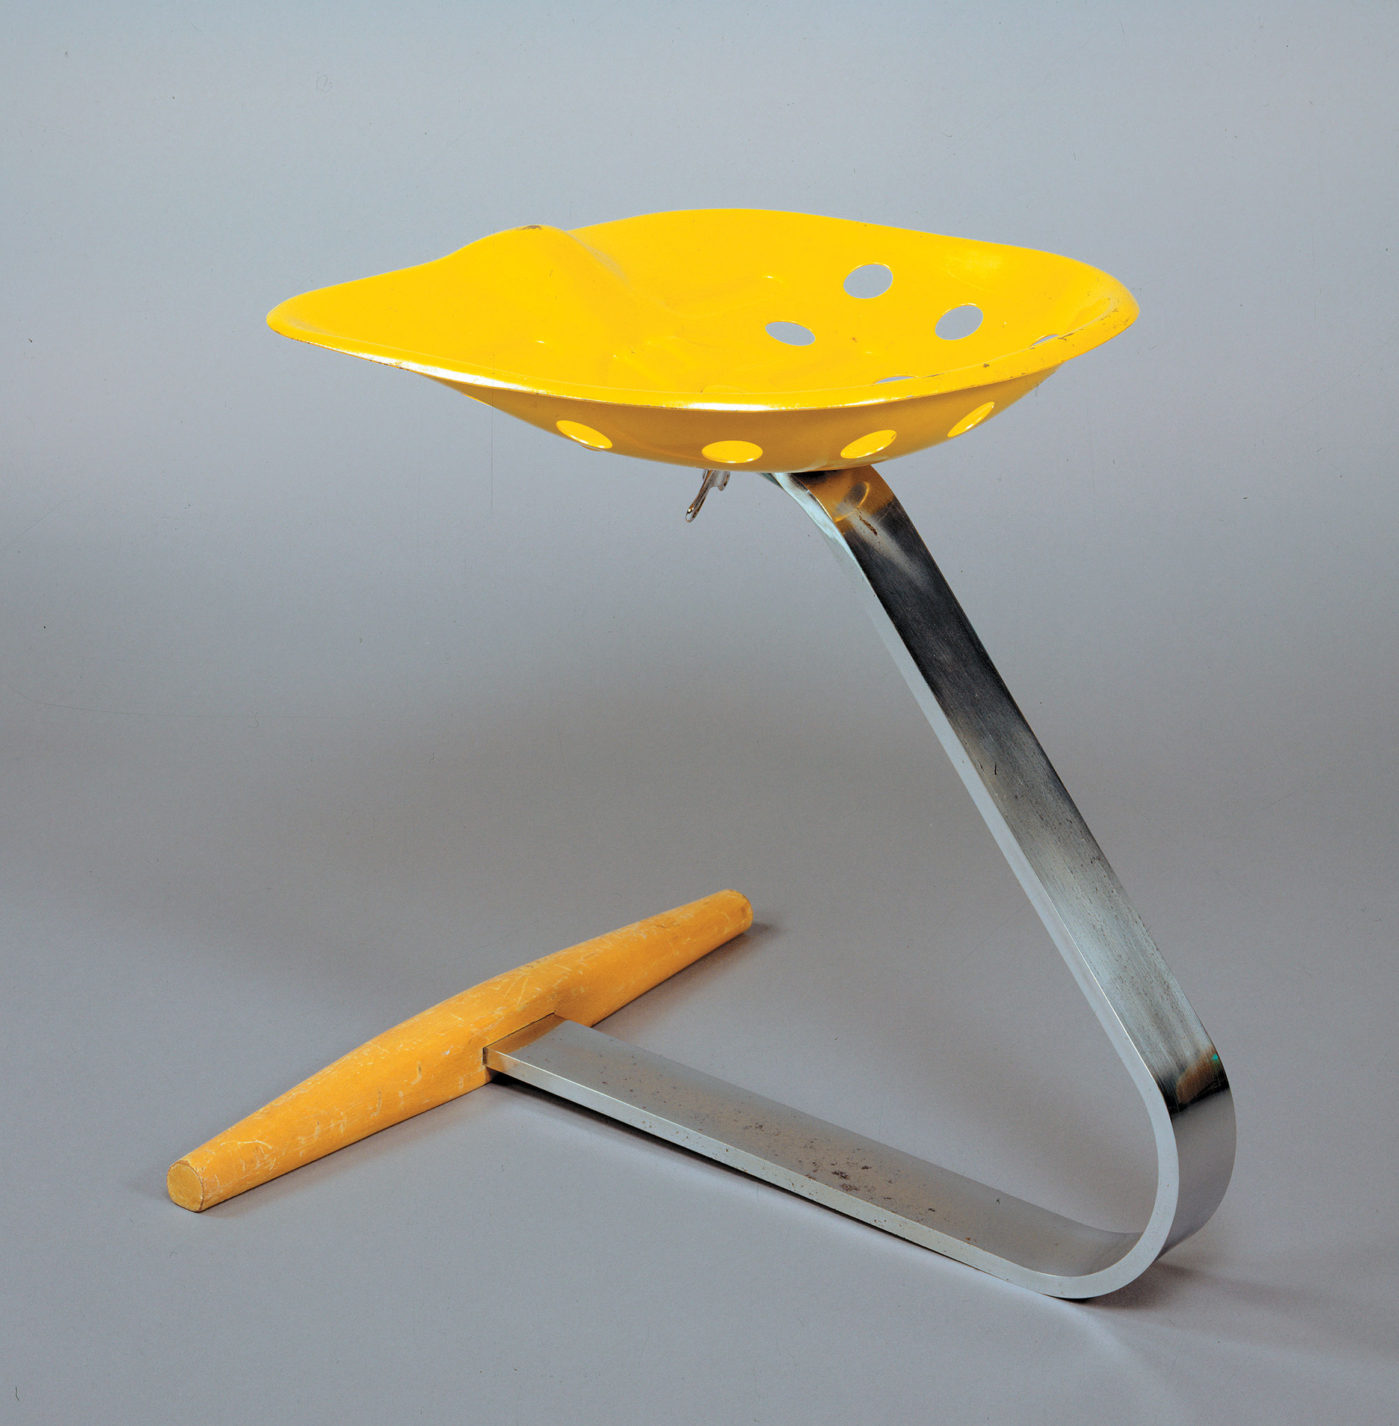 Stool with a wood and strap-steel base supporting an old-fashioned metal tractor seat in bright yellow.